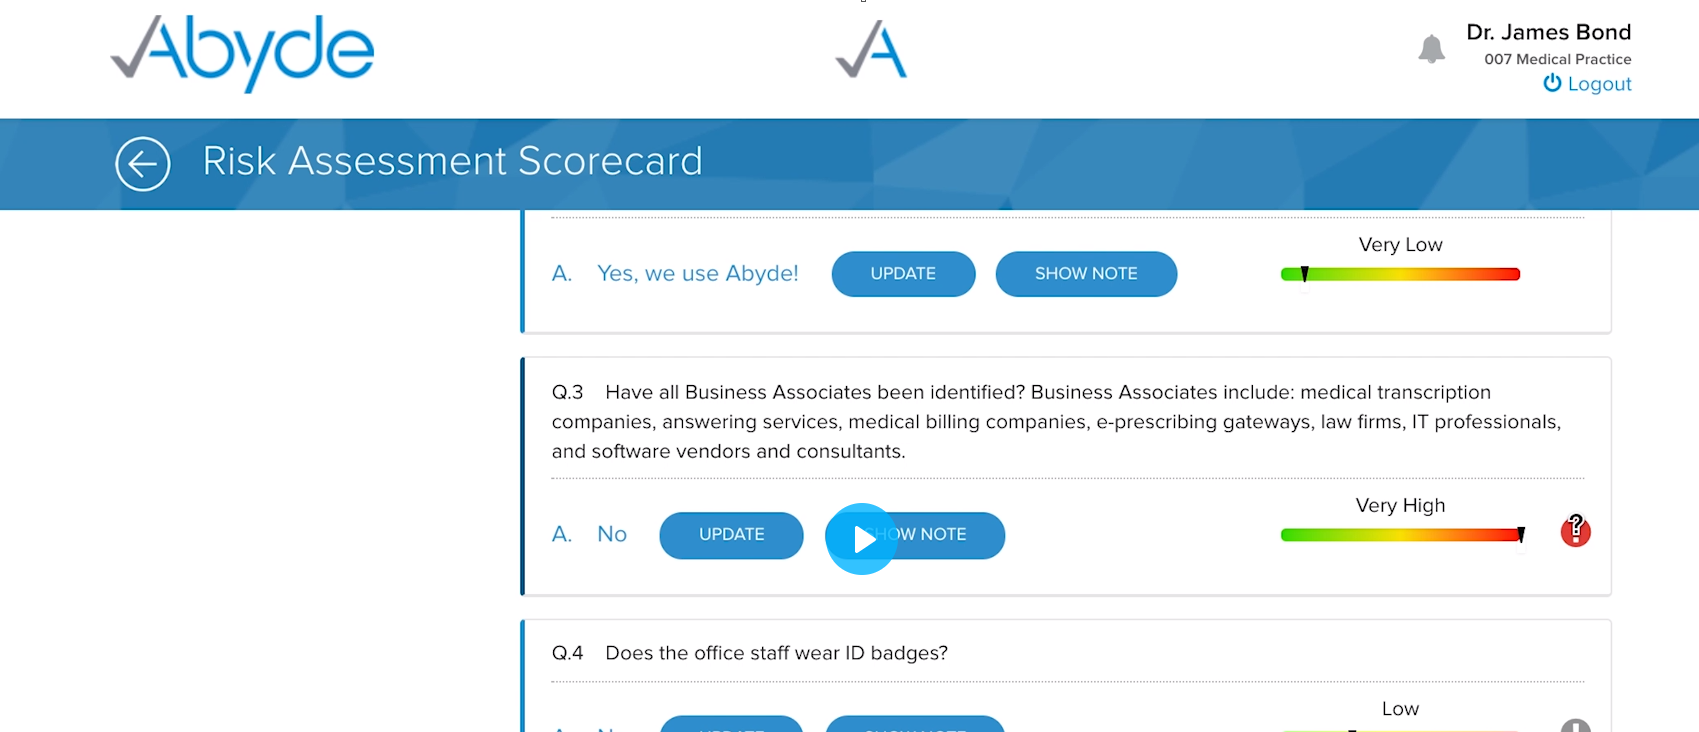 Abyde risk assessment scorecard